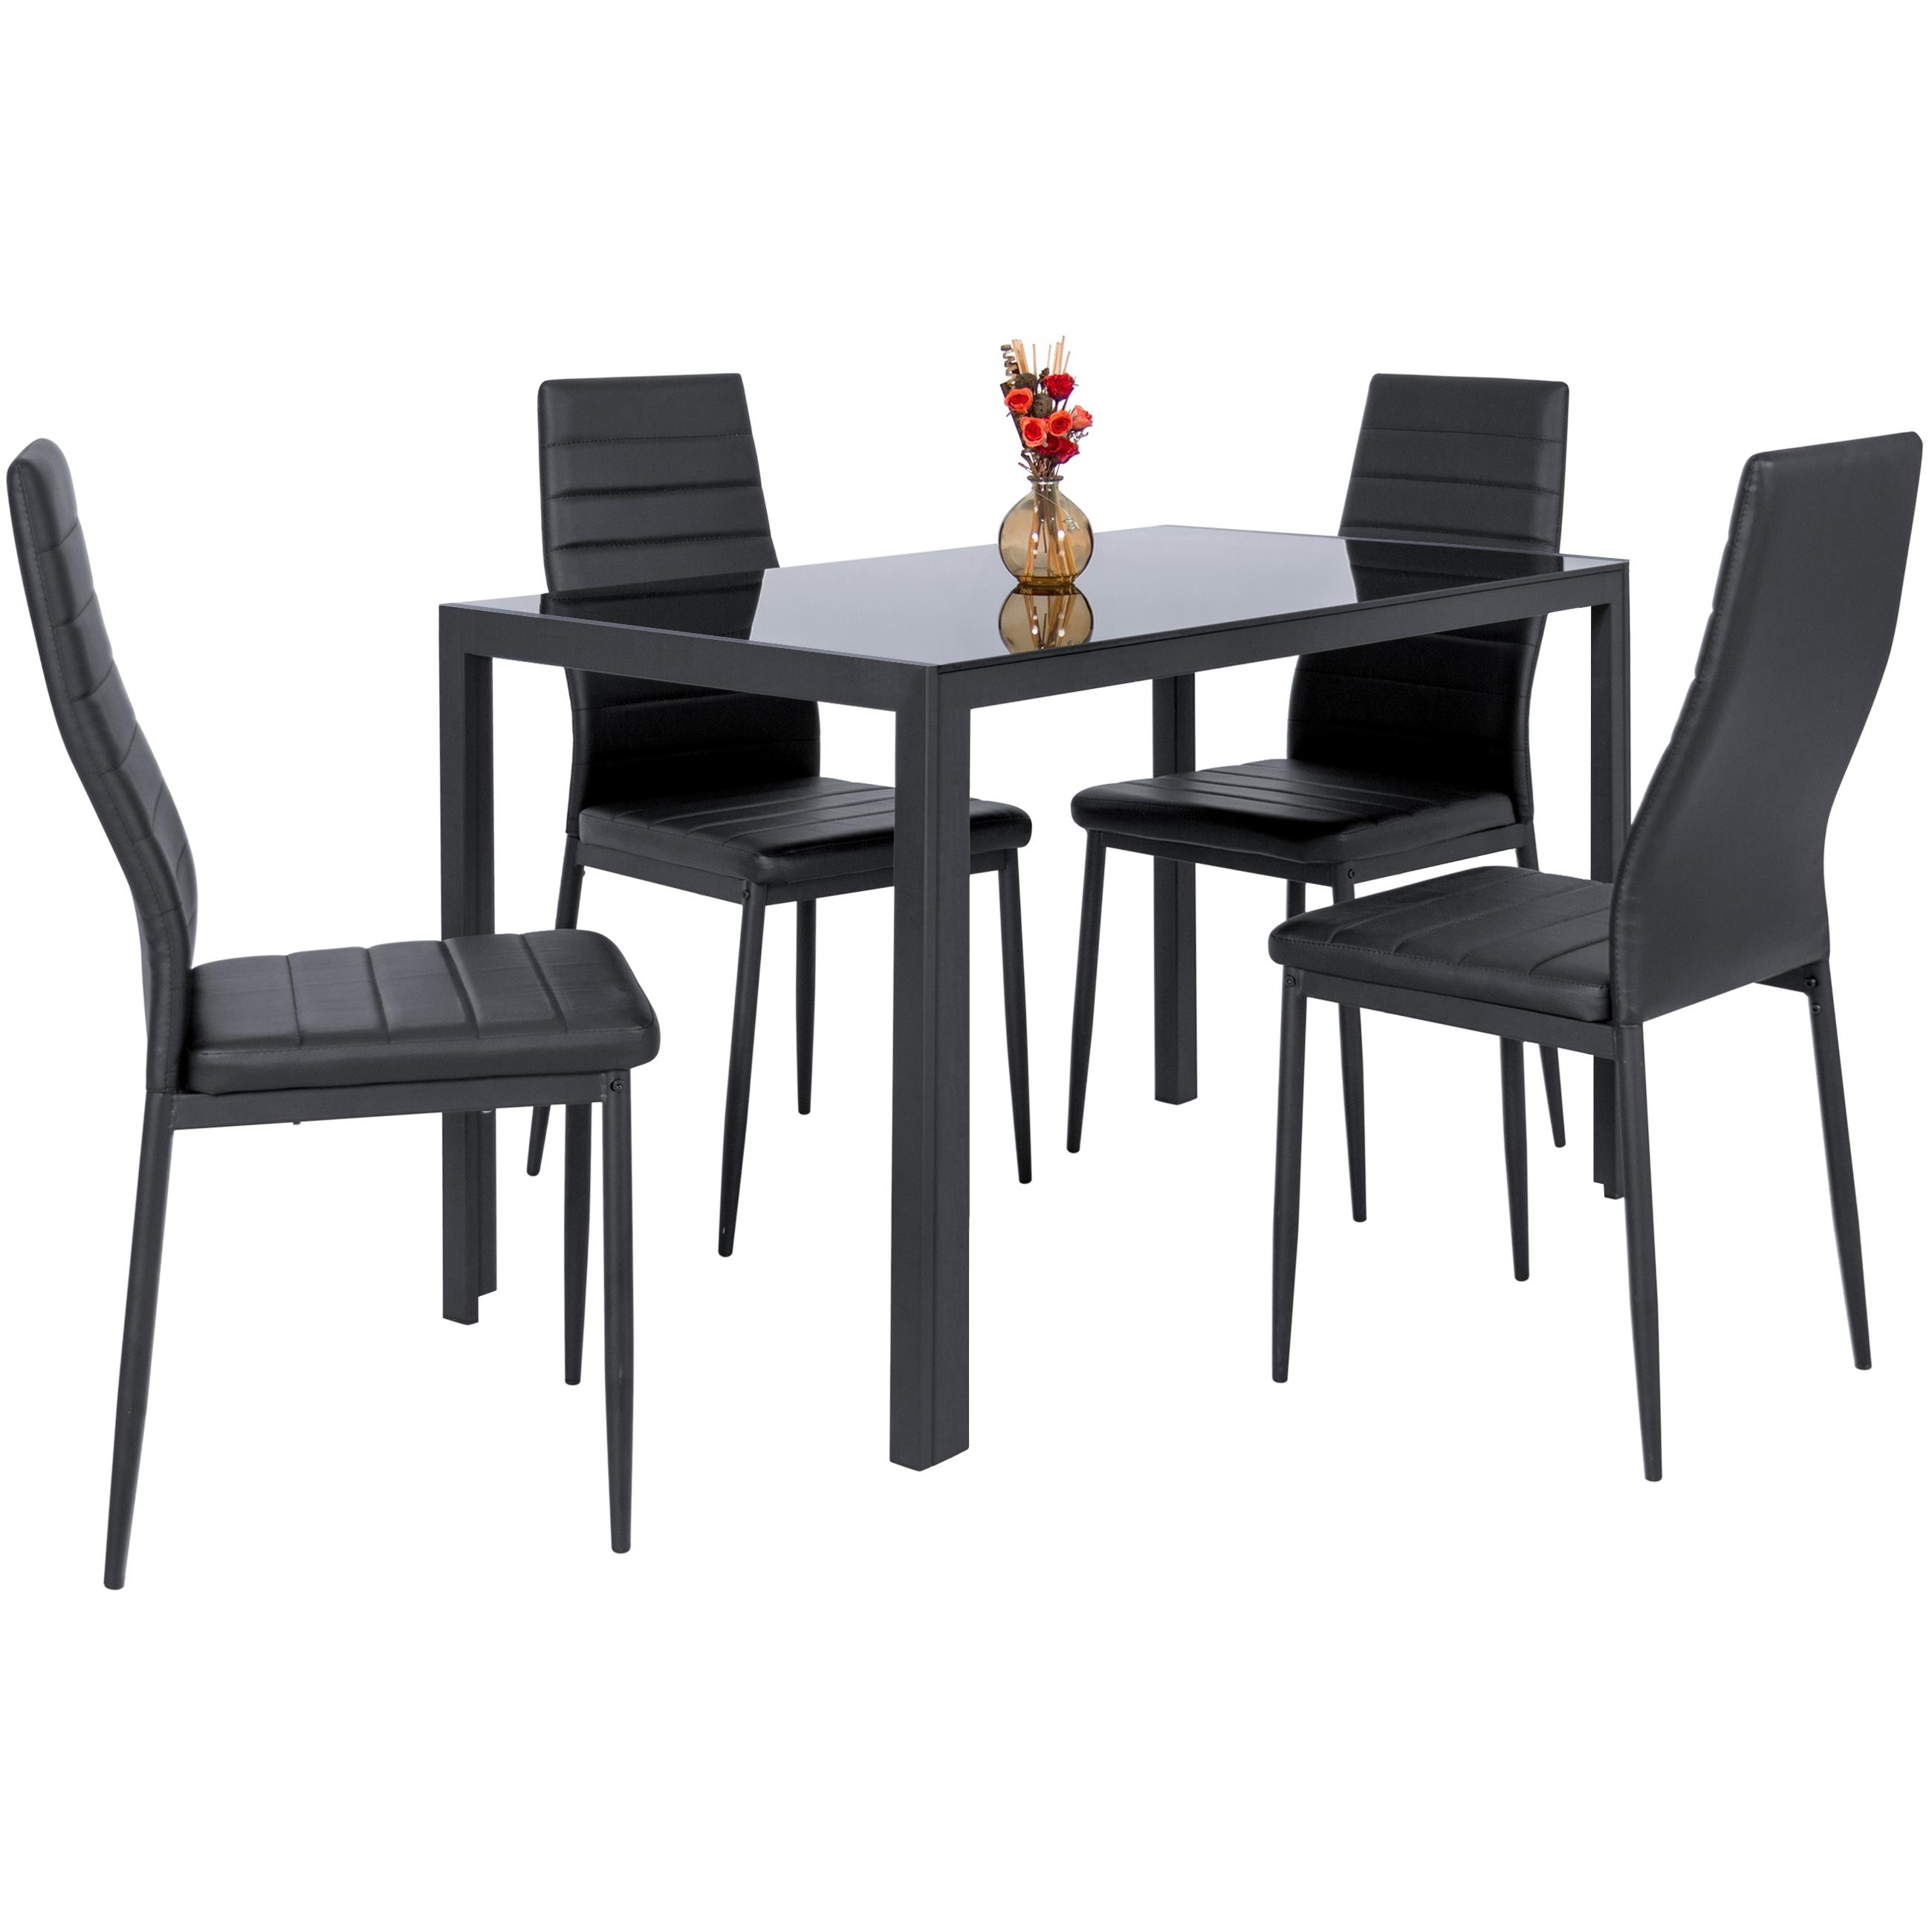 Glass Dining Table And Chairs Zimtown Modern Dining Table Set 4 Chair Glass Metal Kitchen Room Breakfast Furniture